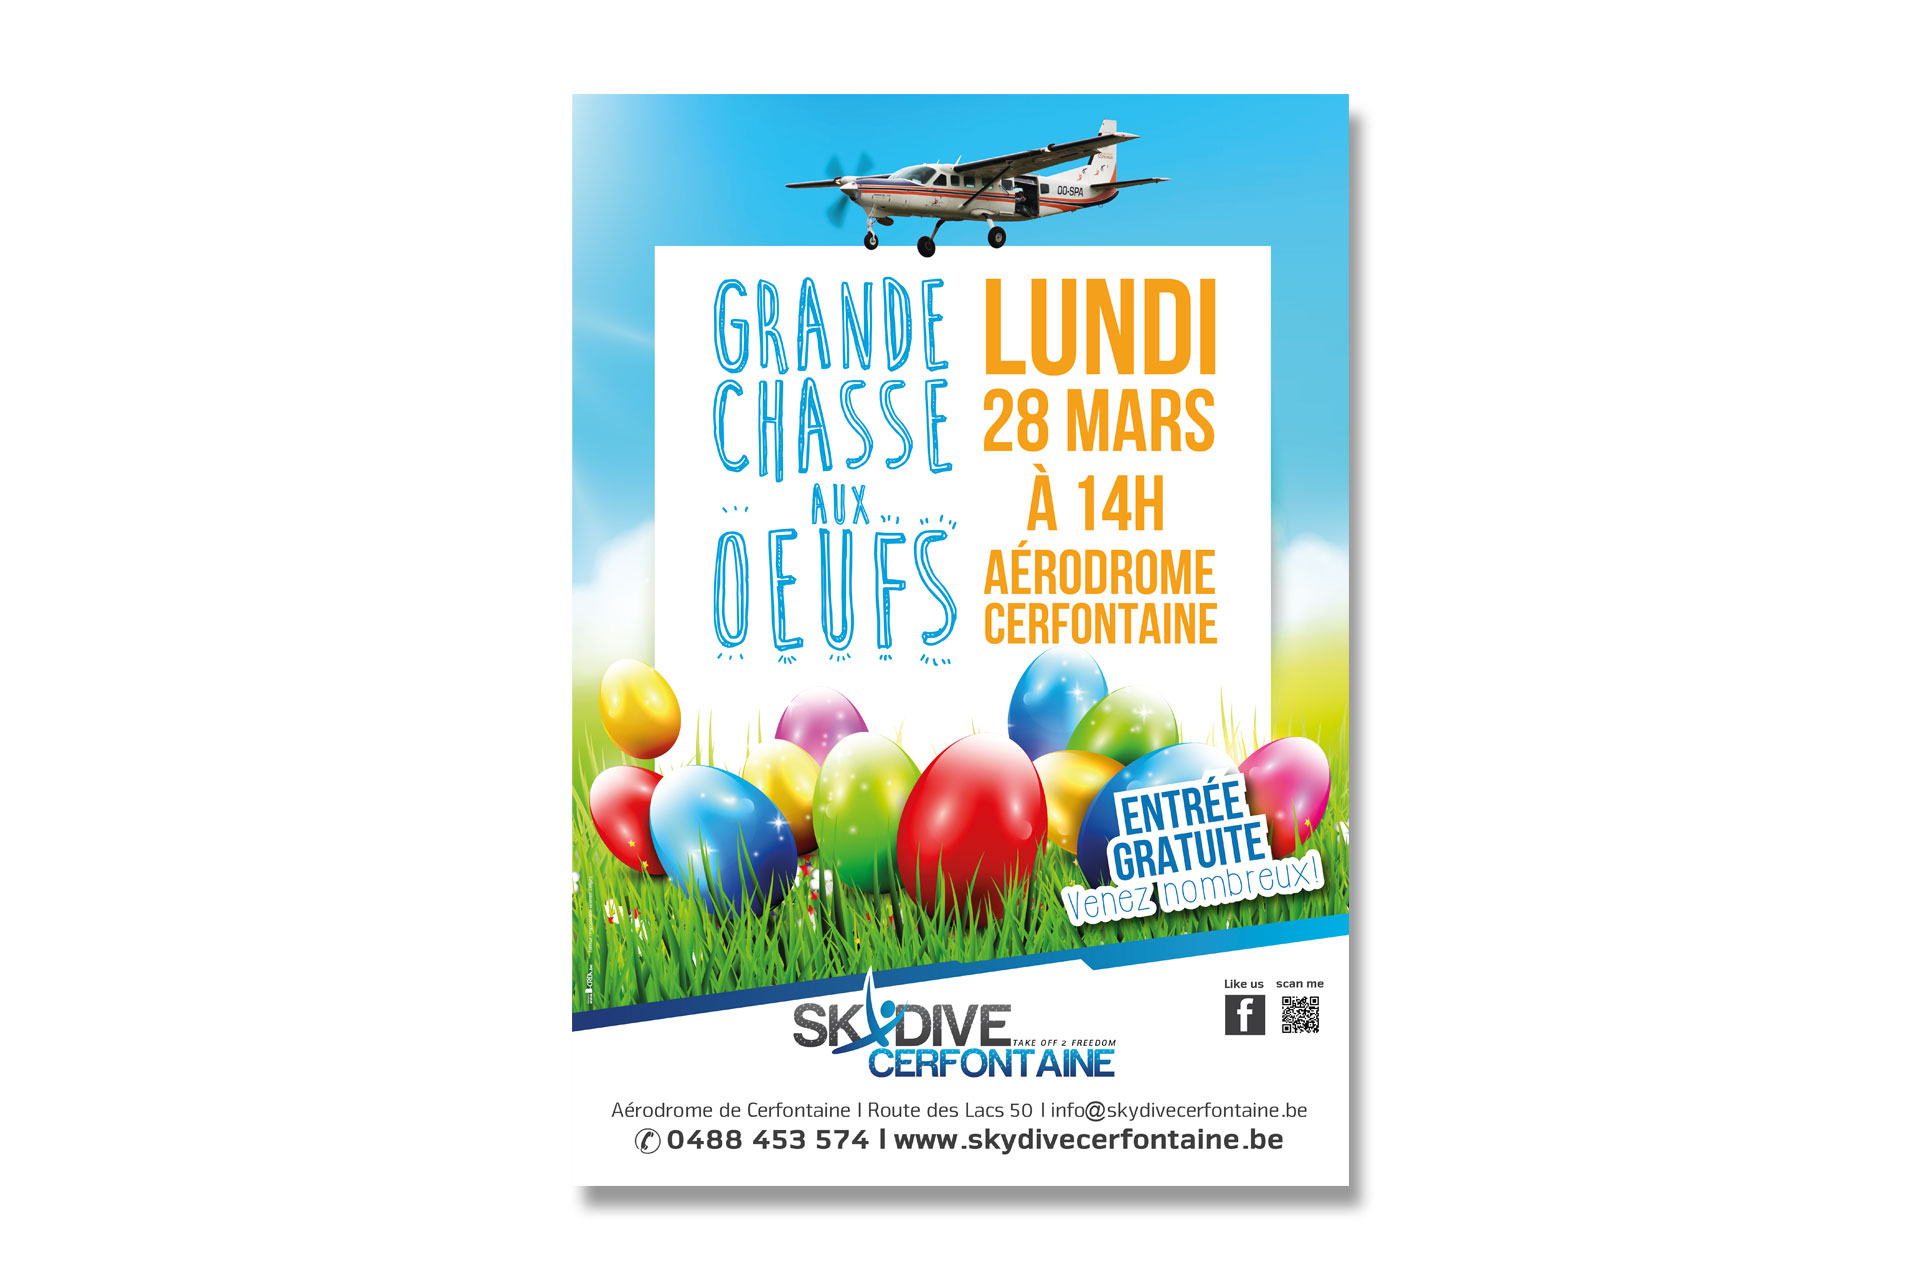 affiche-skydive-cerfontaine-paques